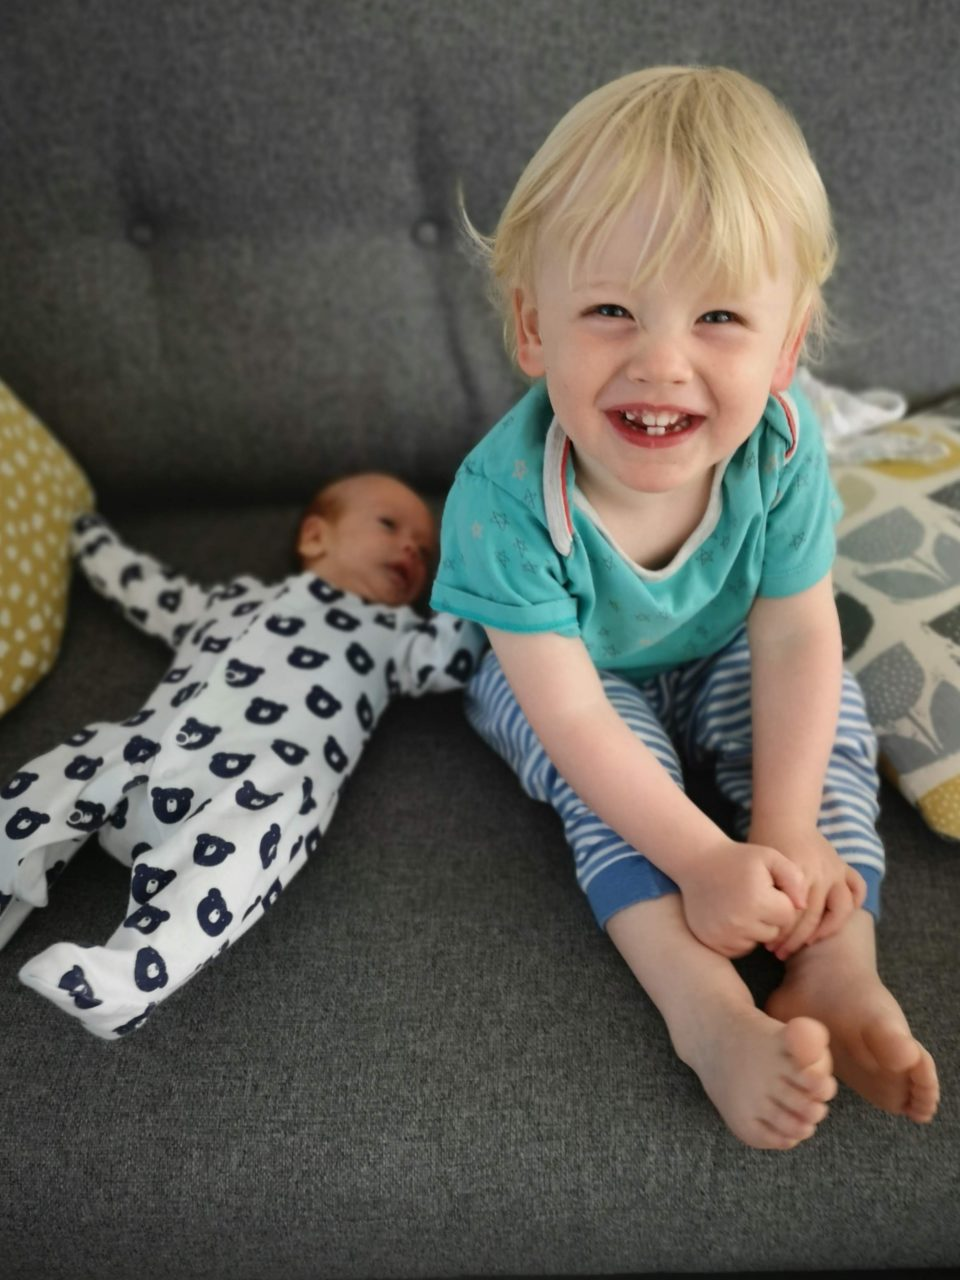 Blond toddler sitting next to newborn baby